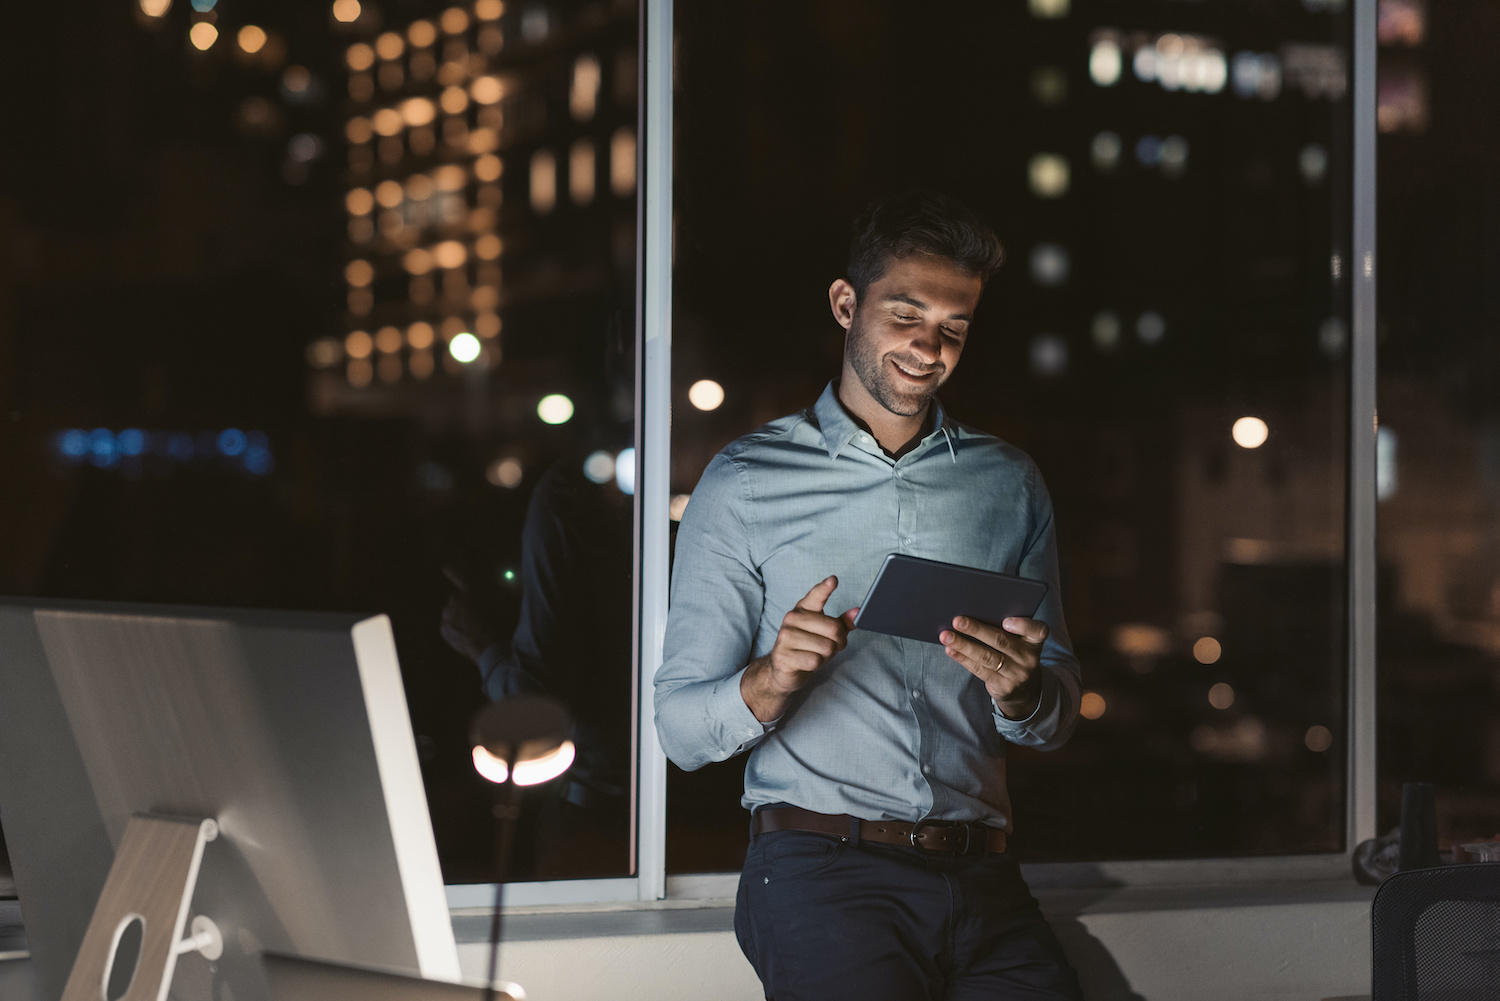 Smiling young businessman standing alone in an office working with a digital tablet late at night with city lights in the background